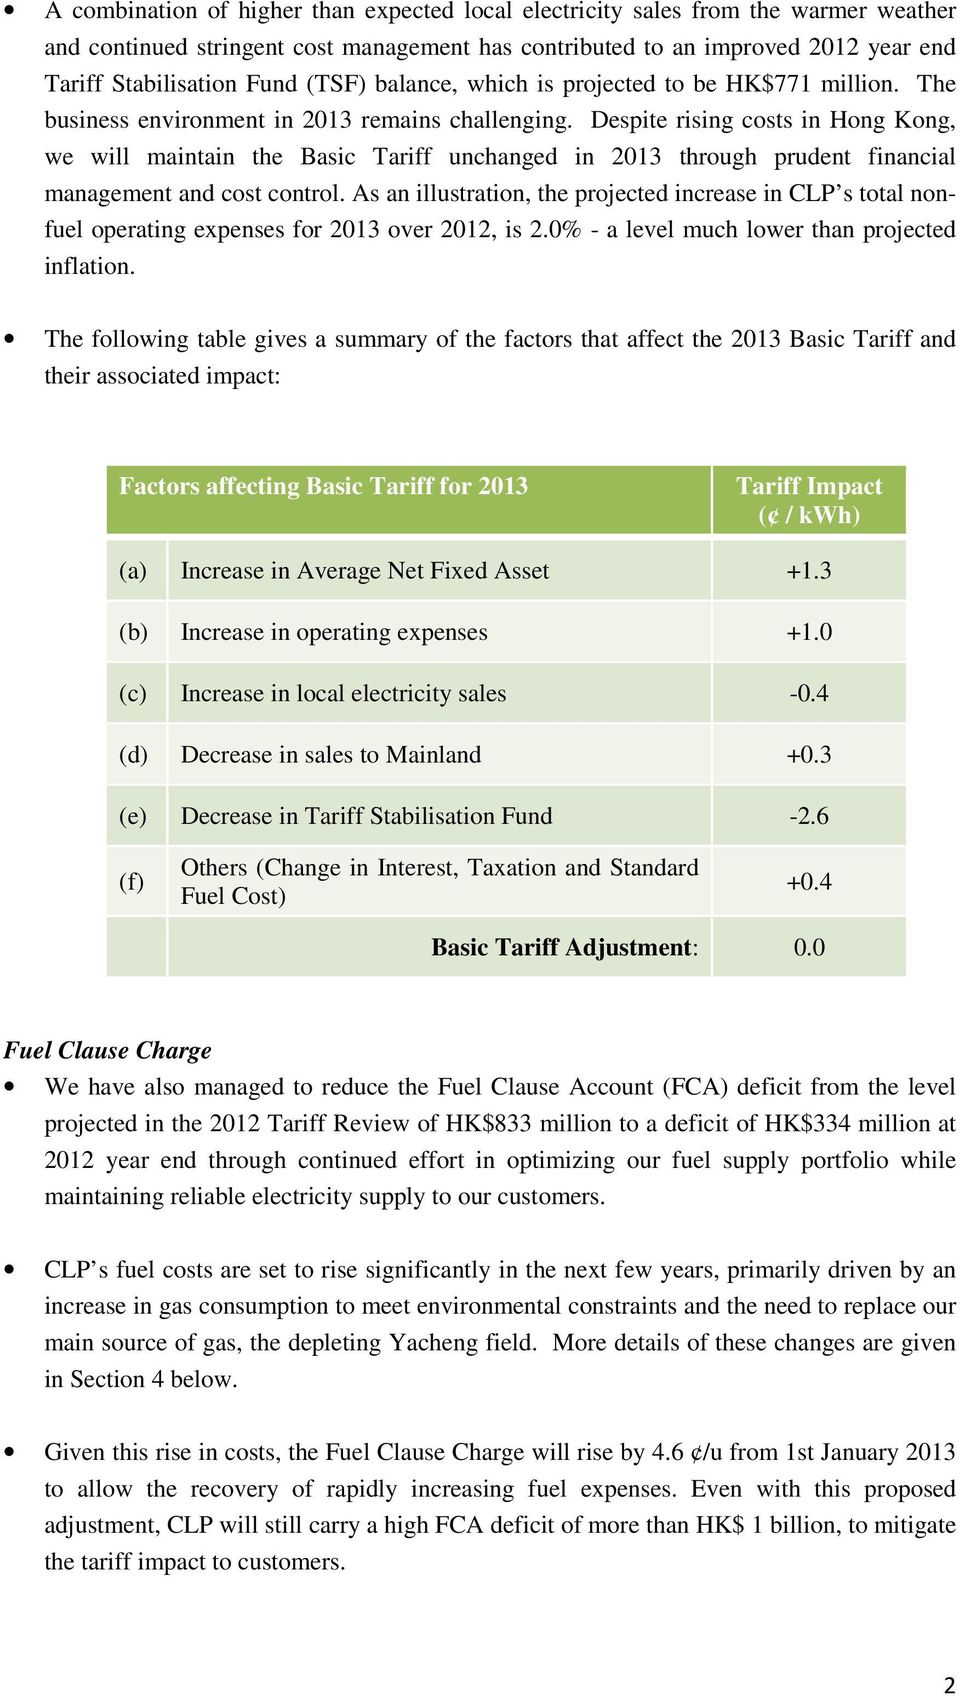 Despite rising costs in Hong Kong, we will maintain the Basic Tariff unchanged in 2013 through prudent financial management and cost control.